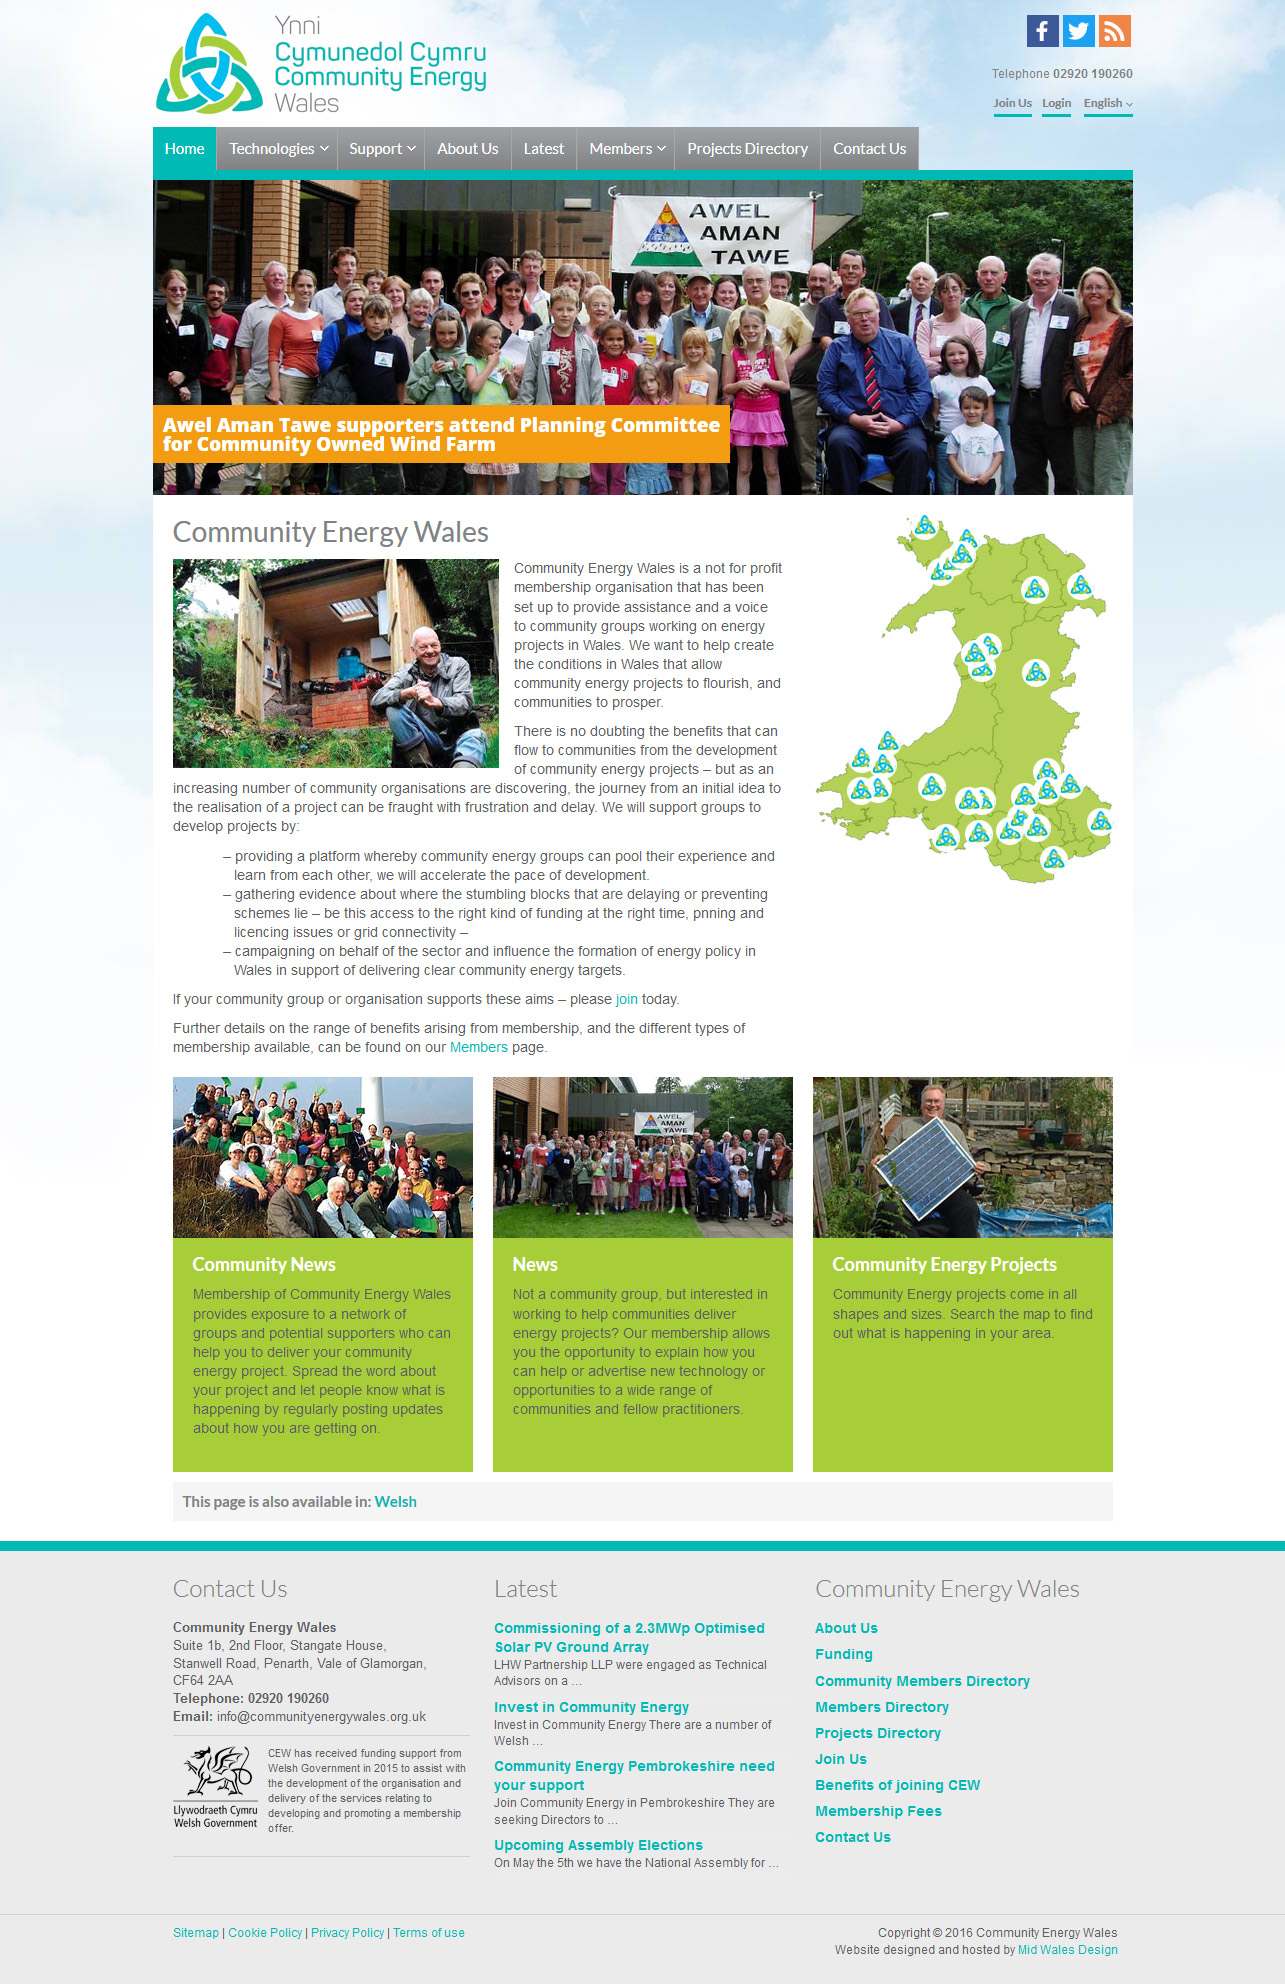 Community Energy Wales website